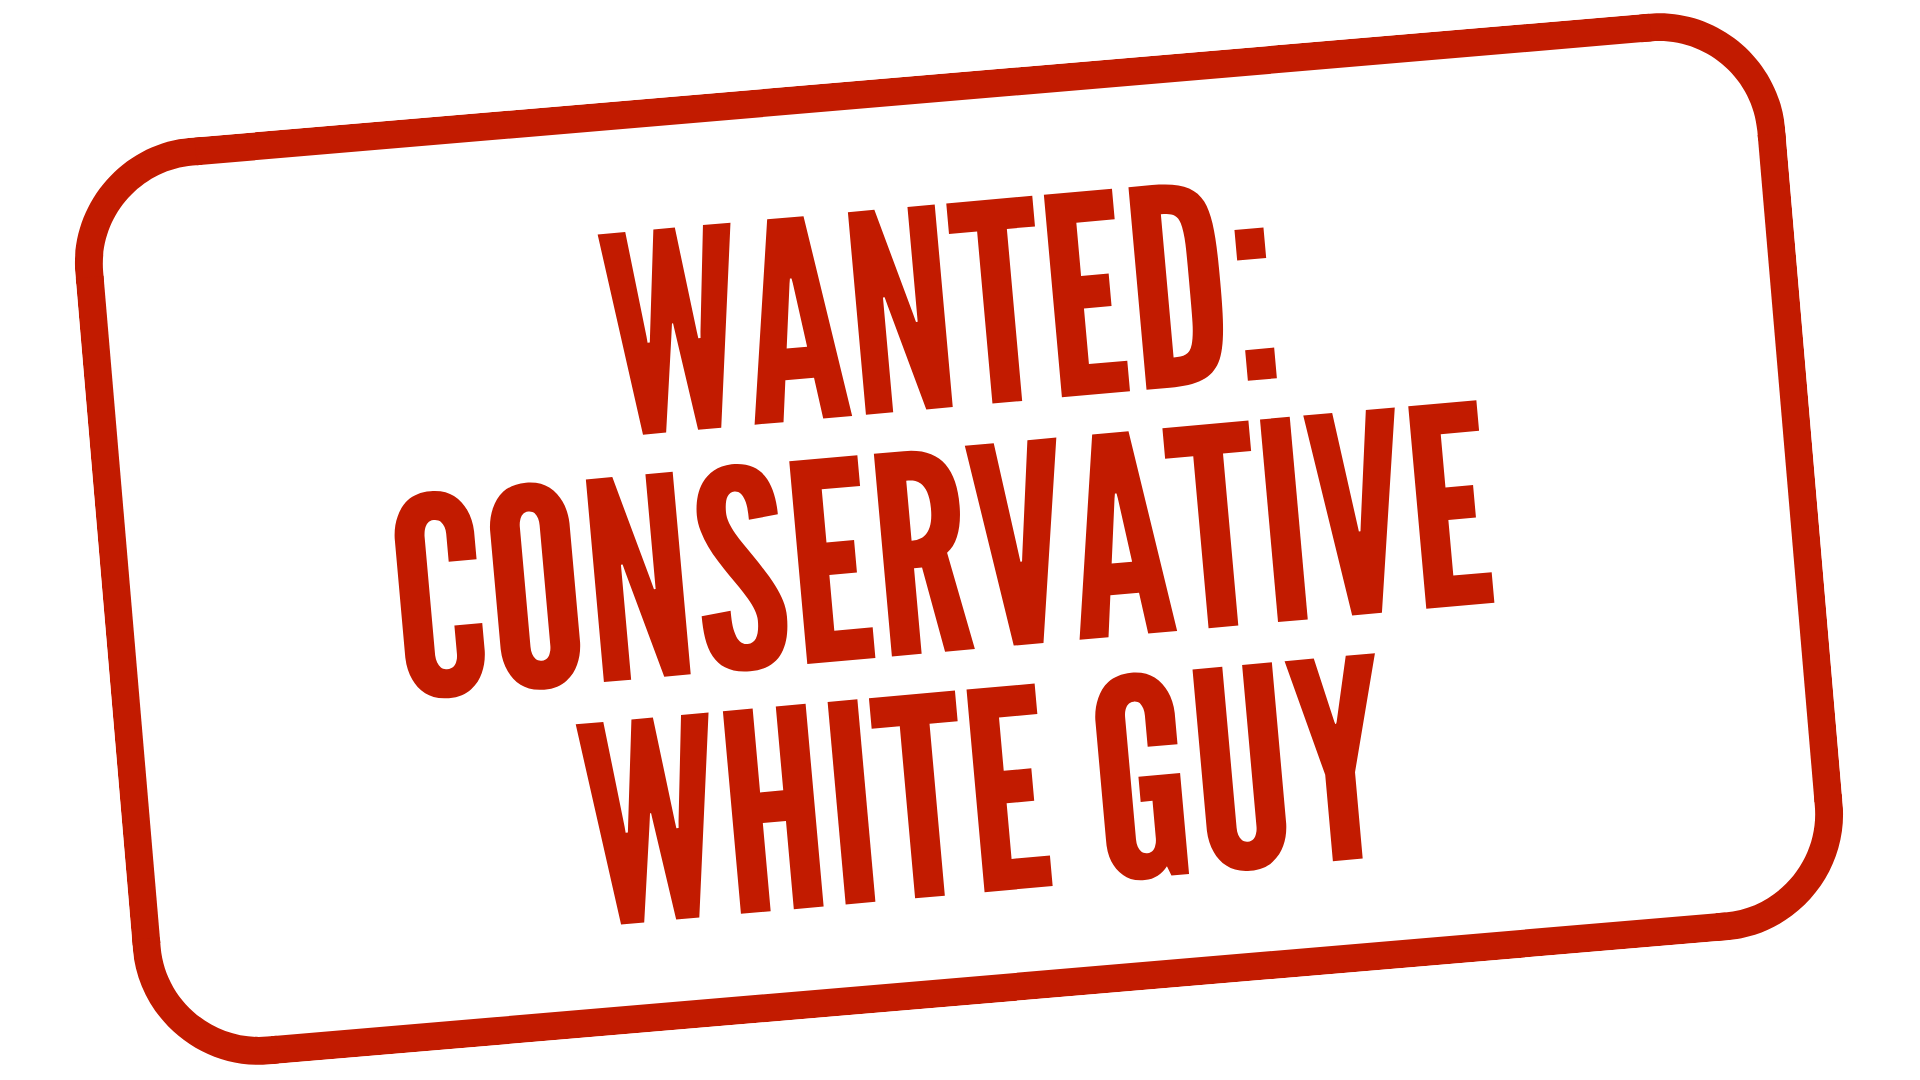 Exclusive See The Job Ad That Prompted Brett Kavanaugh To Apply 1 Cek Status Now Hiring Associate Justice Of Supreme Court United States